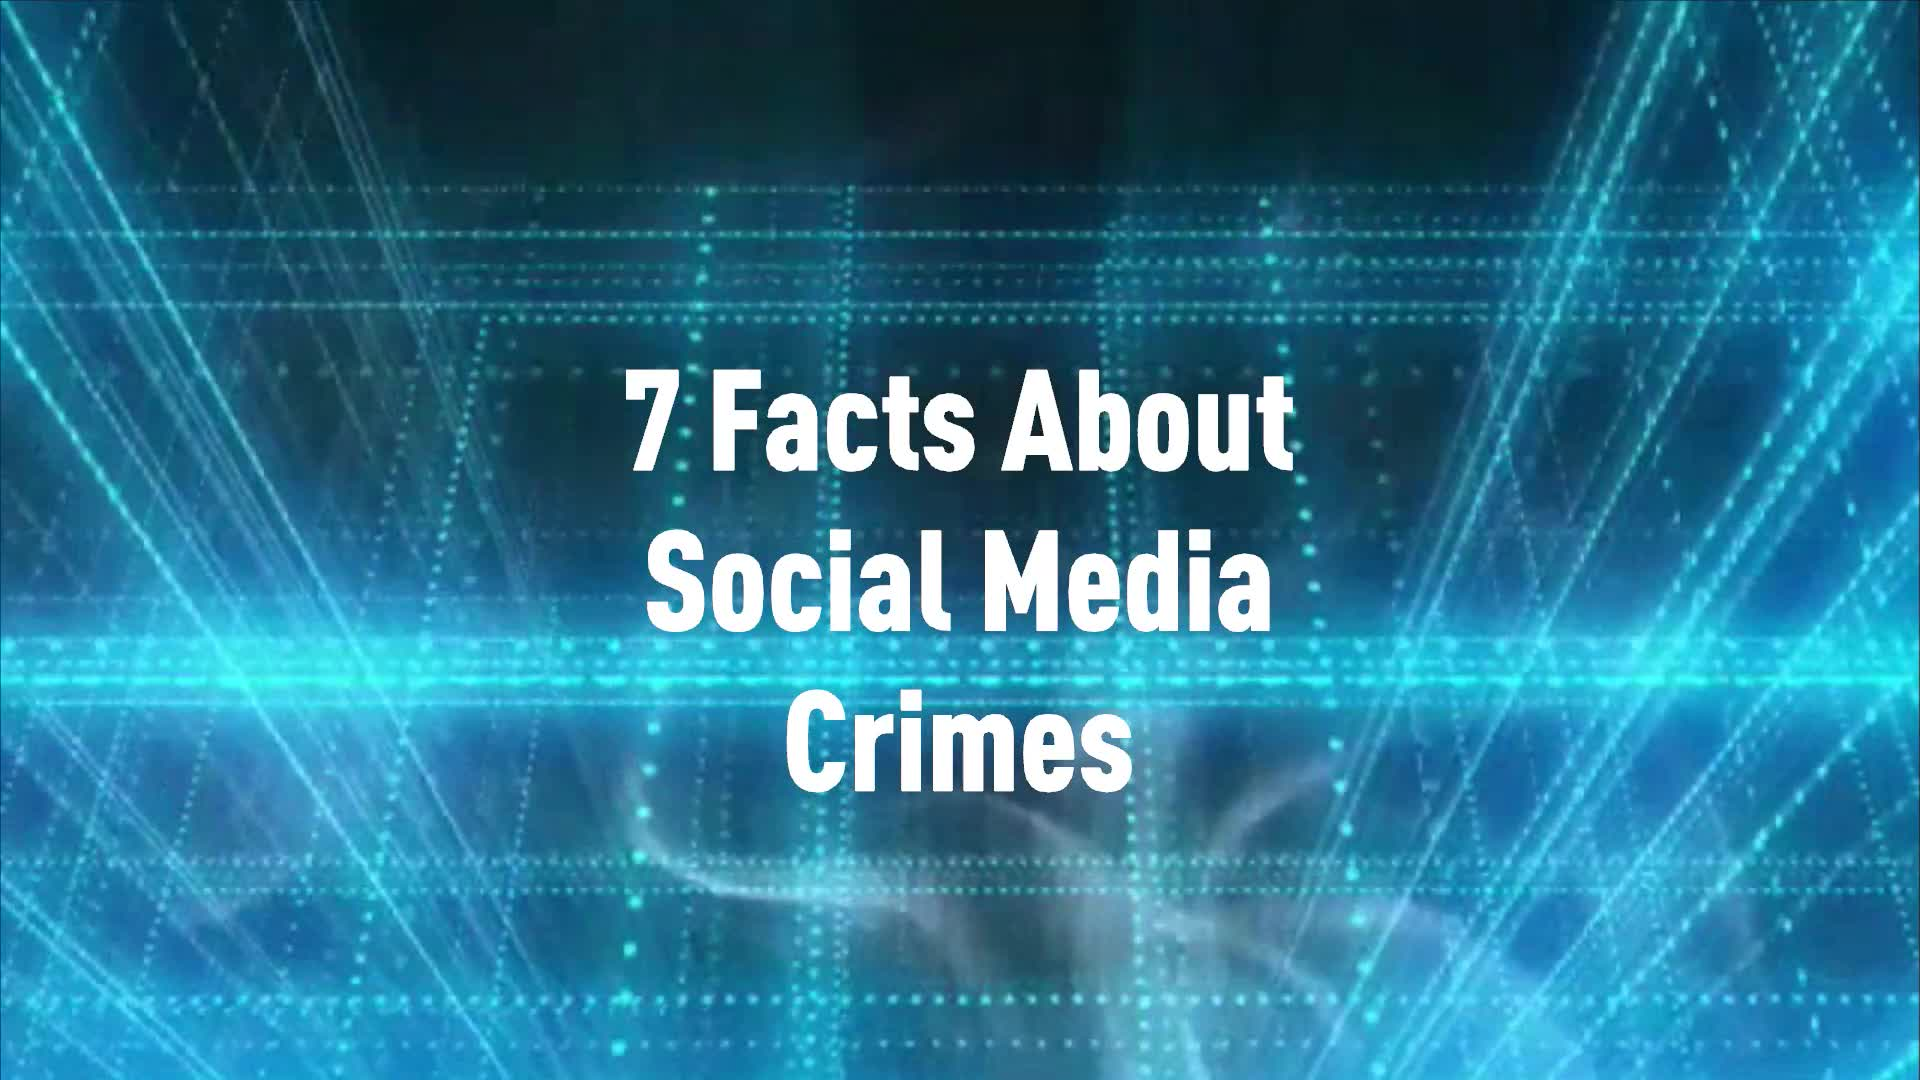 7 Facts About Social Media Crimes